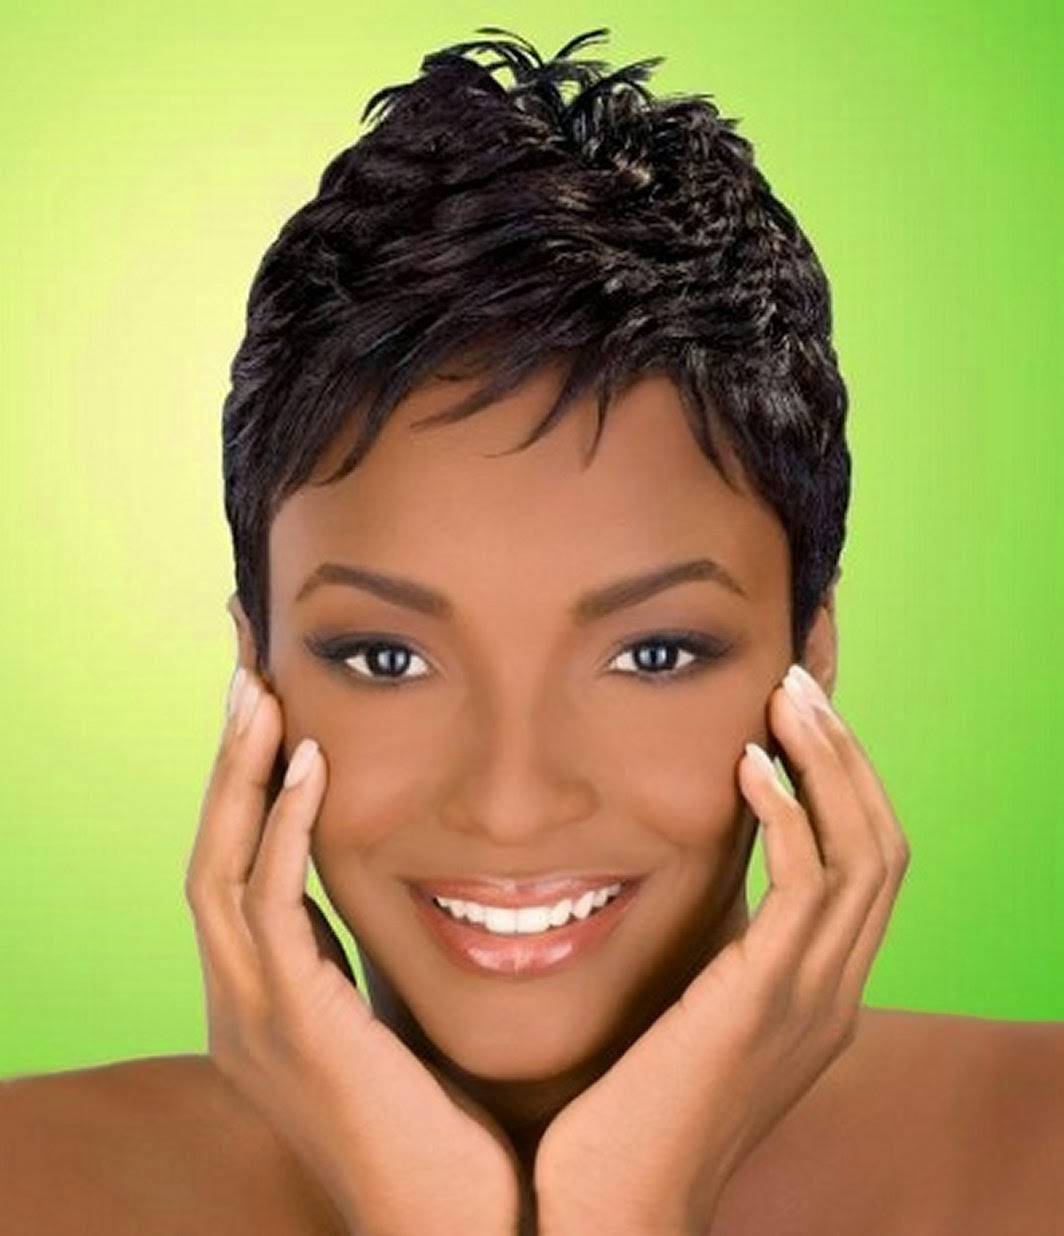 Hairstyles For Short Hair In Africa : Cute Short Hair Styles